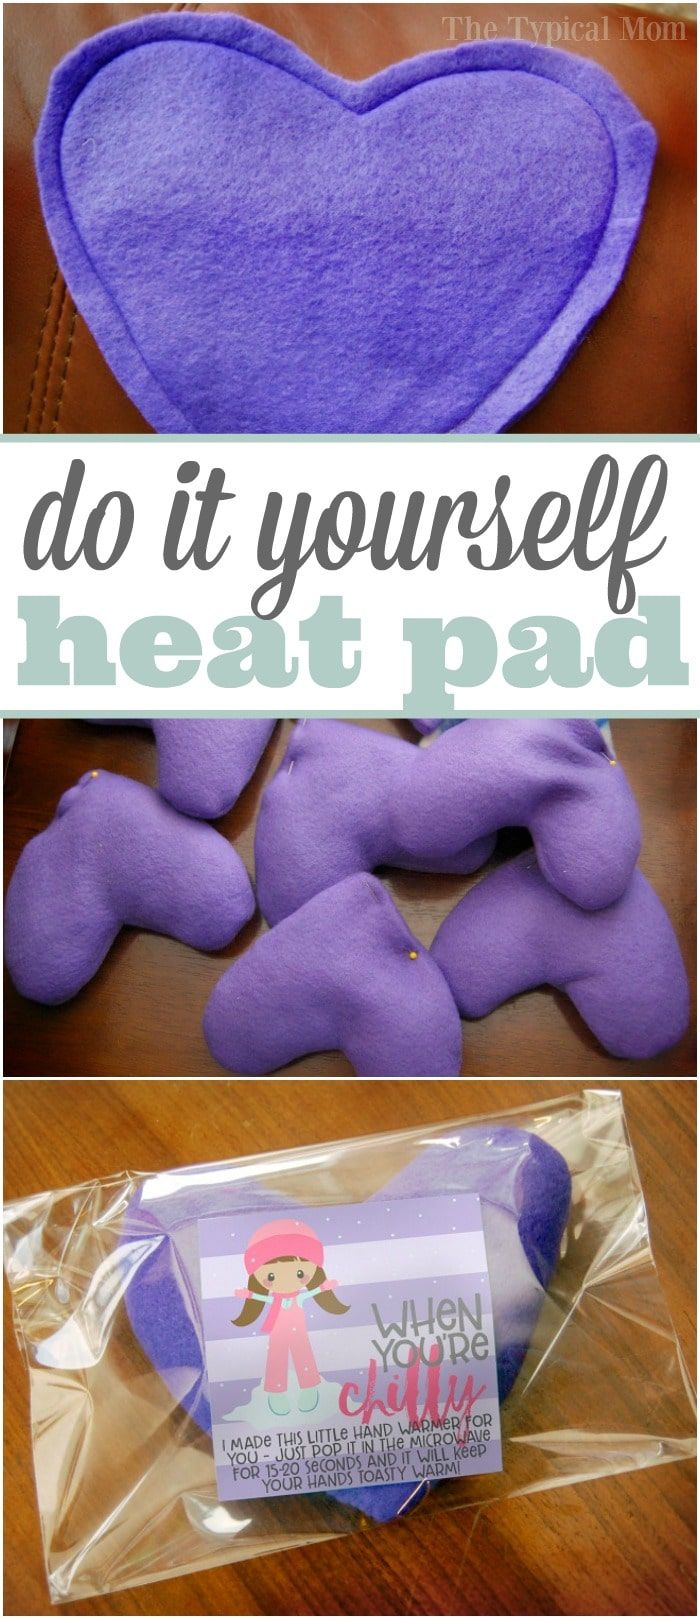 How to make homemade hand warmers filled with rice are the perfect little heating pads for your hands & with this free printable a perfect little gift too!